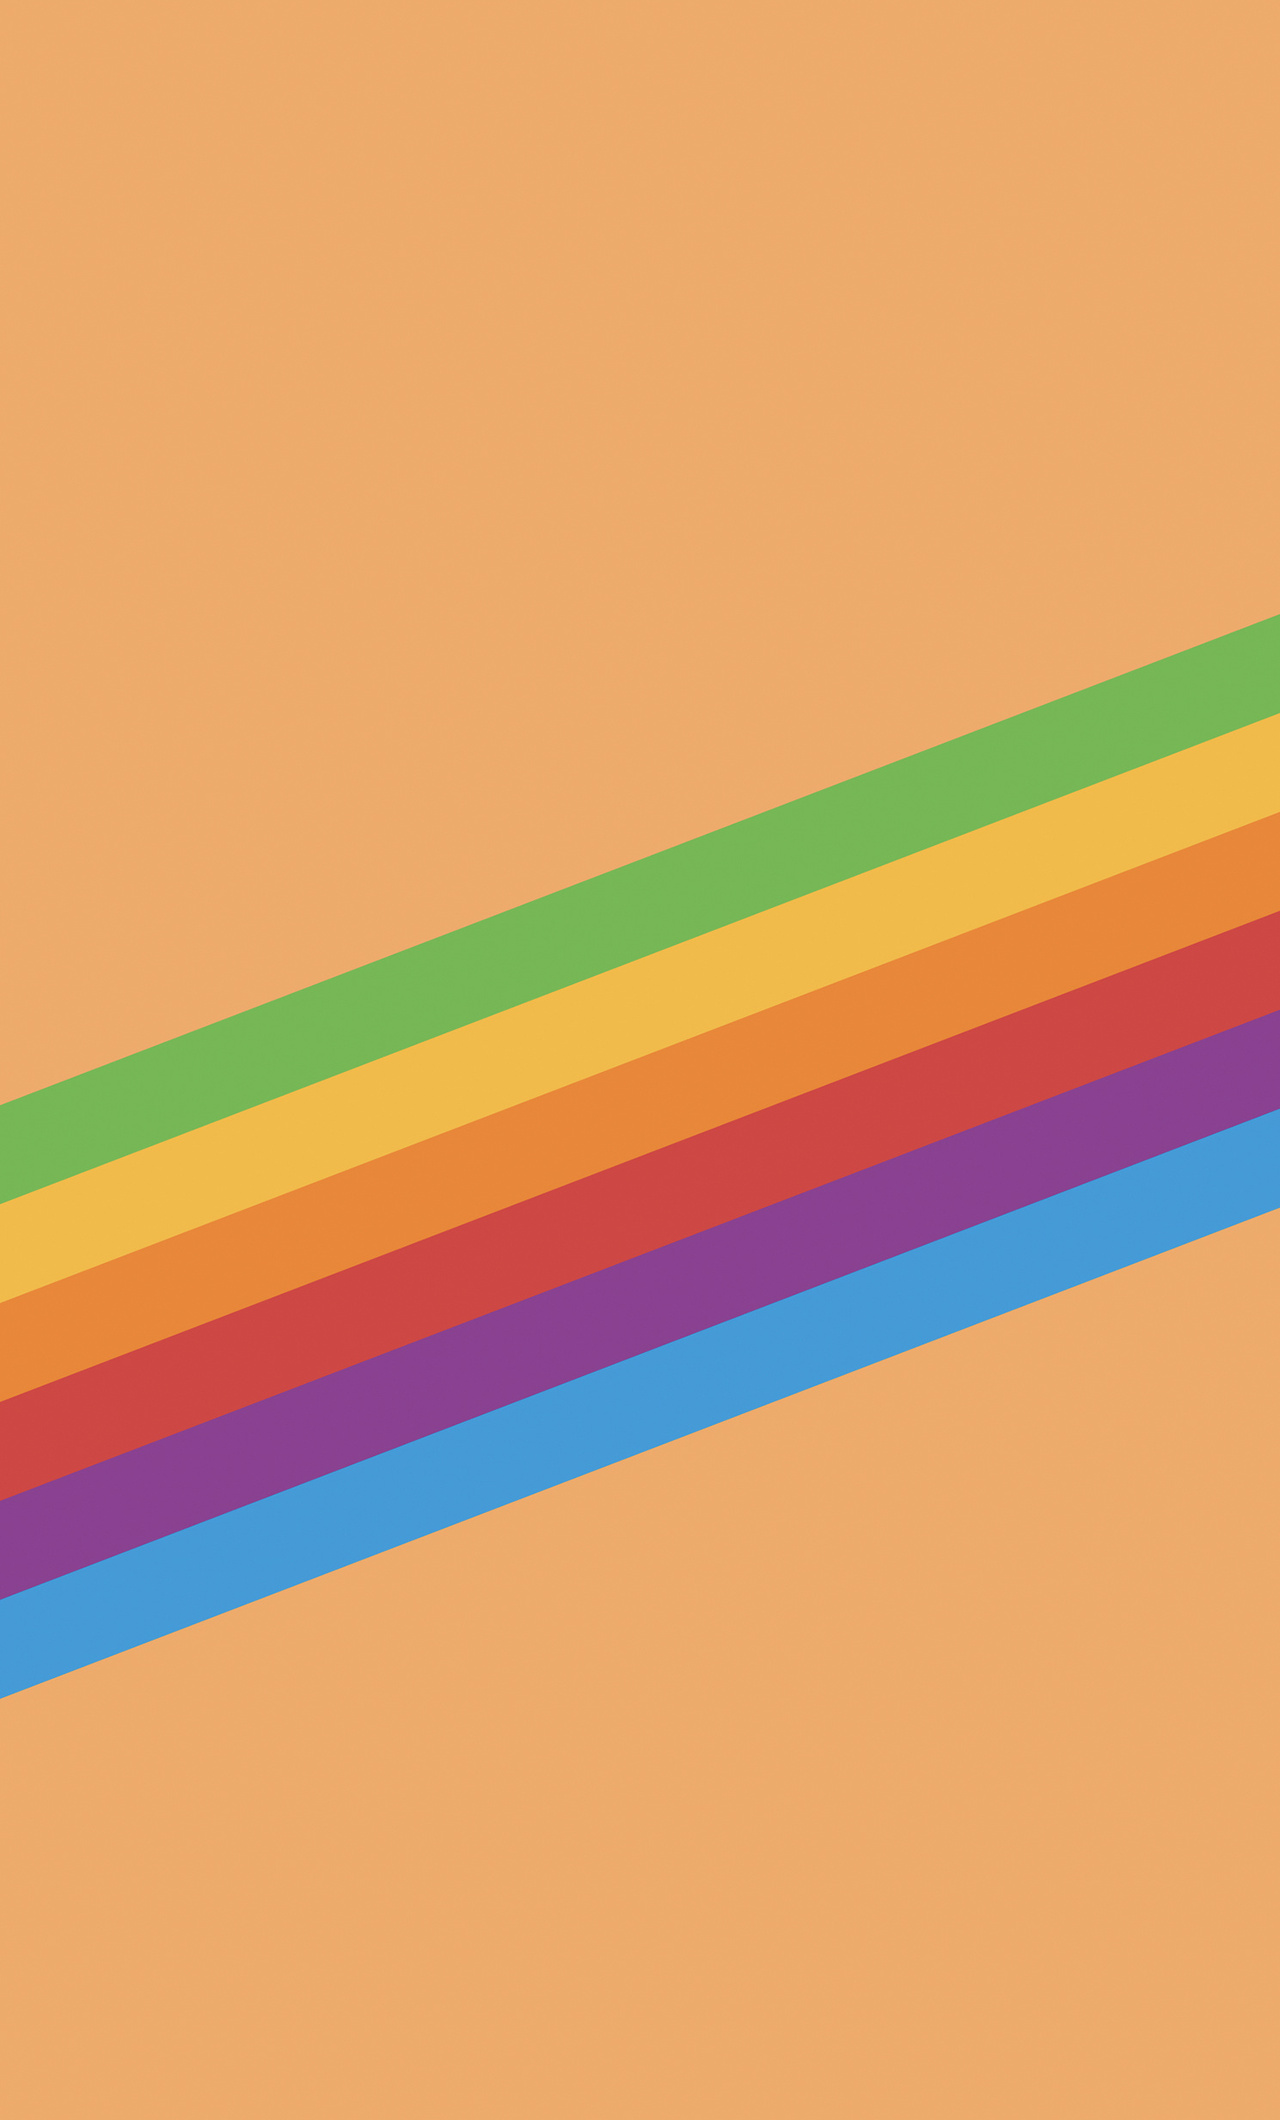 ios heritage orange stripe iphone wallpapers apple 1285 ios11 stripes abstract backgrounds